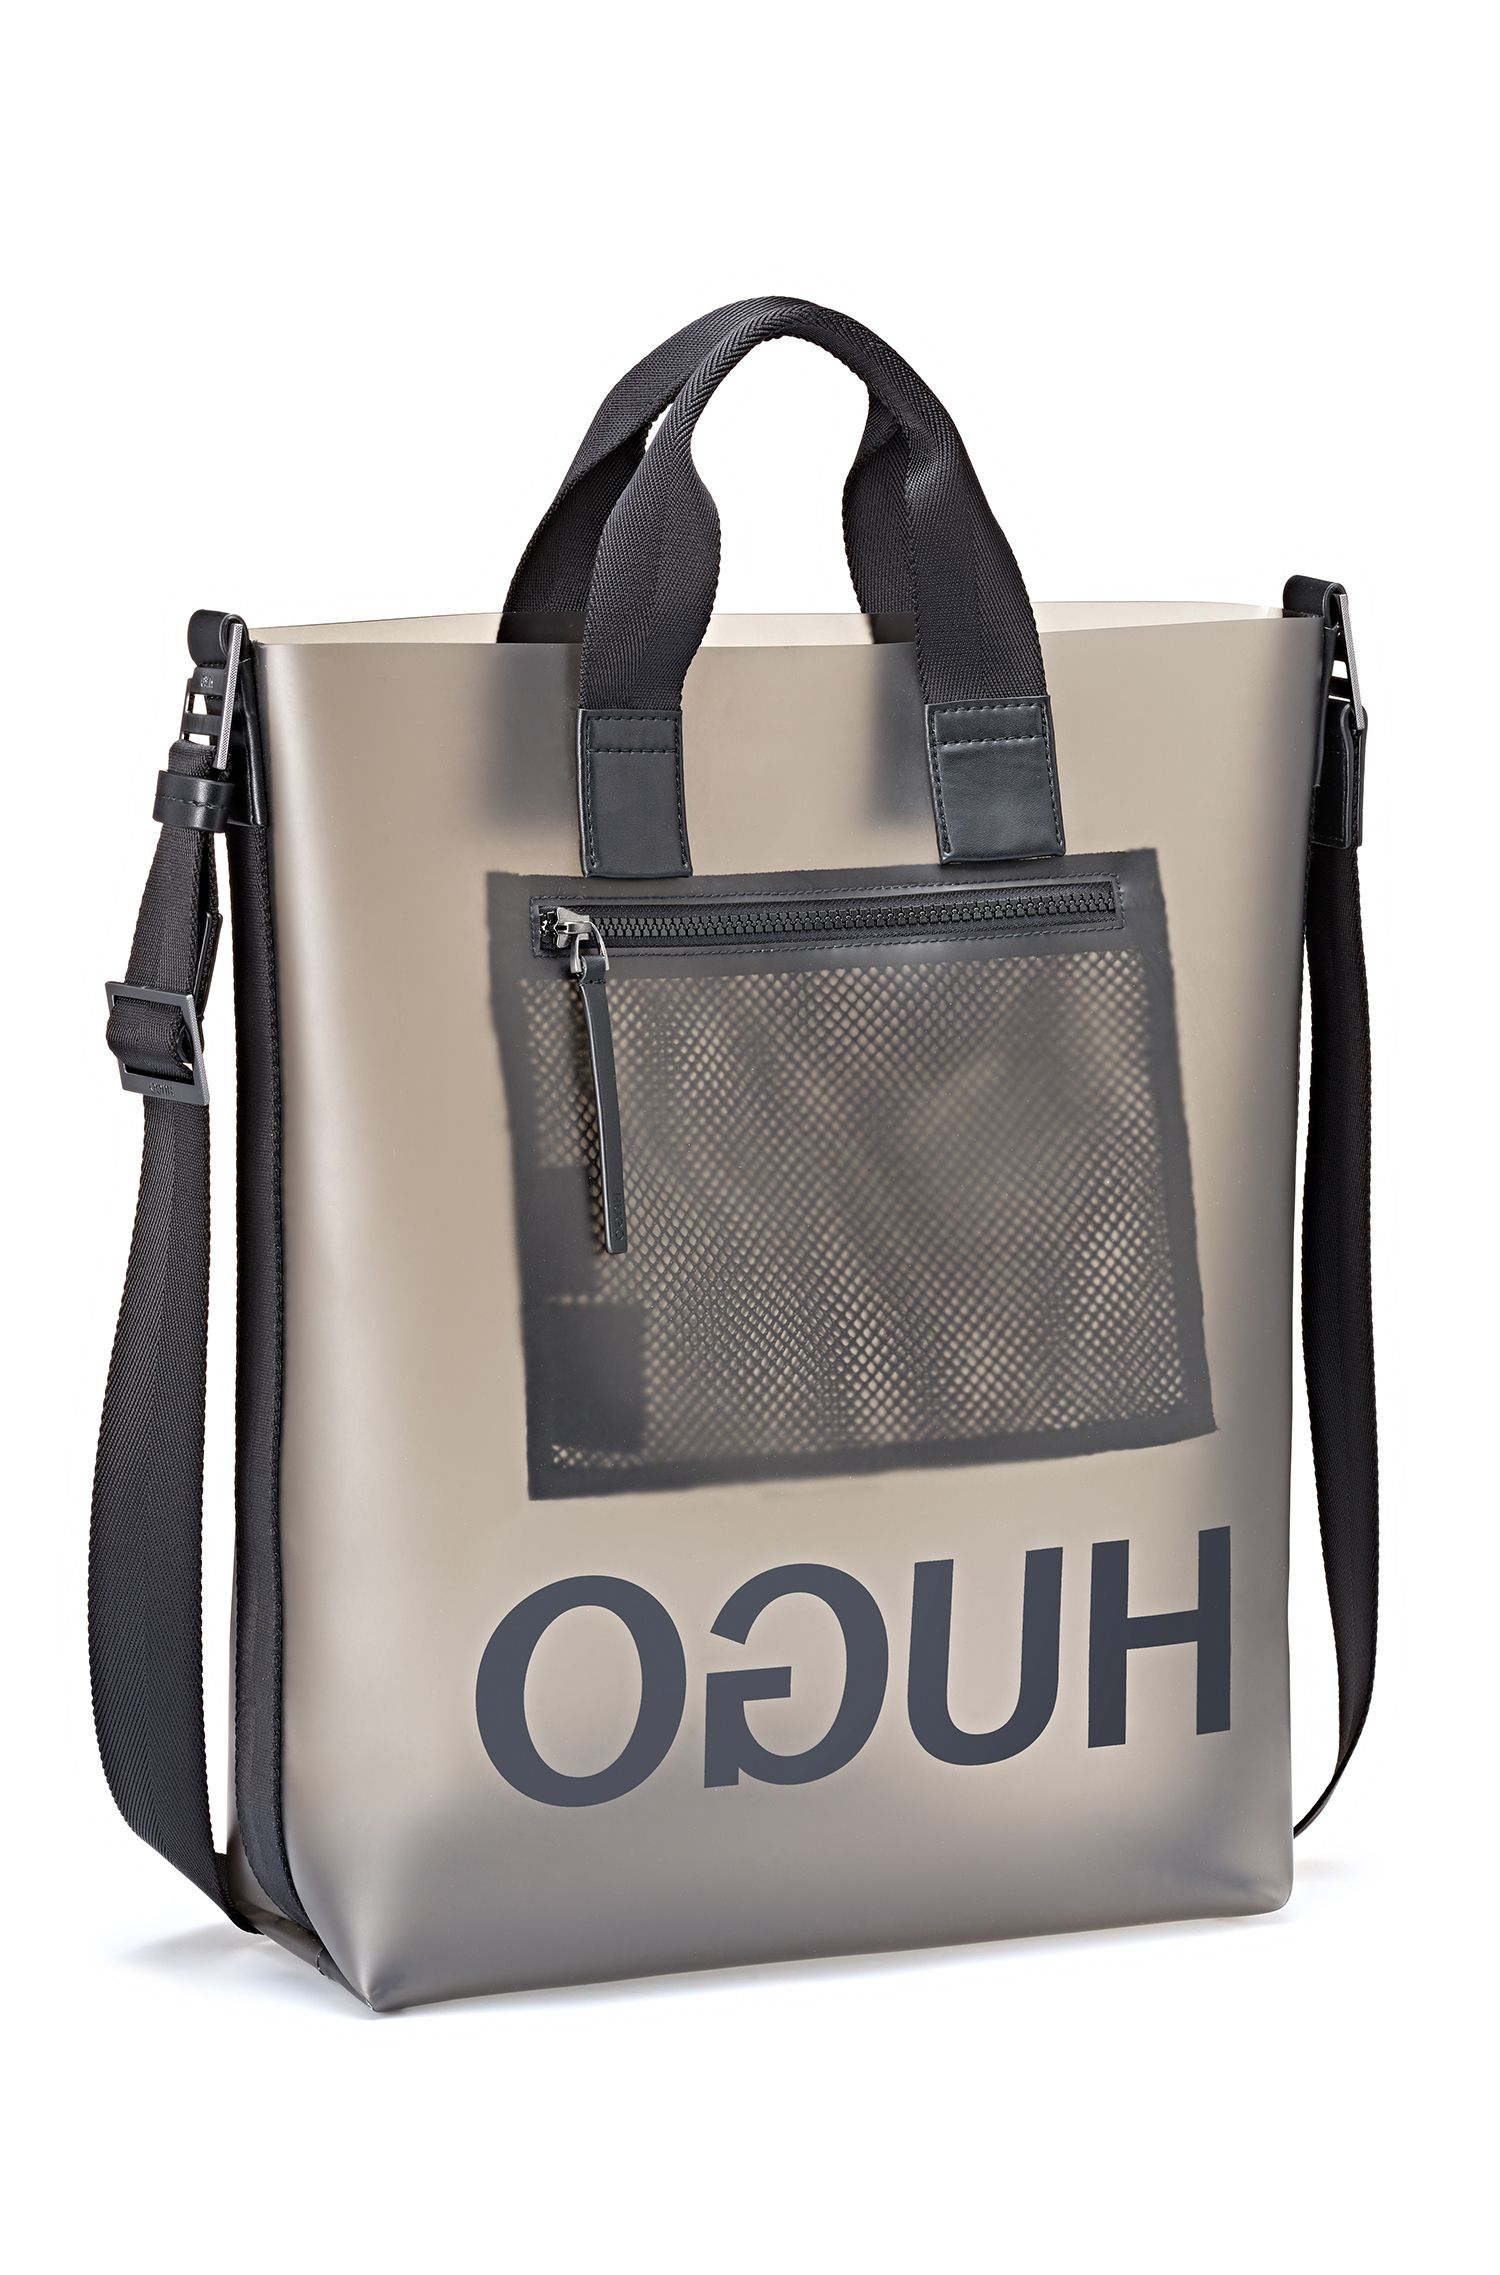 Reversed-logo tote in a smoked-effect semi-transparent material, Transparent